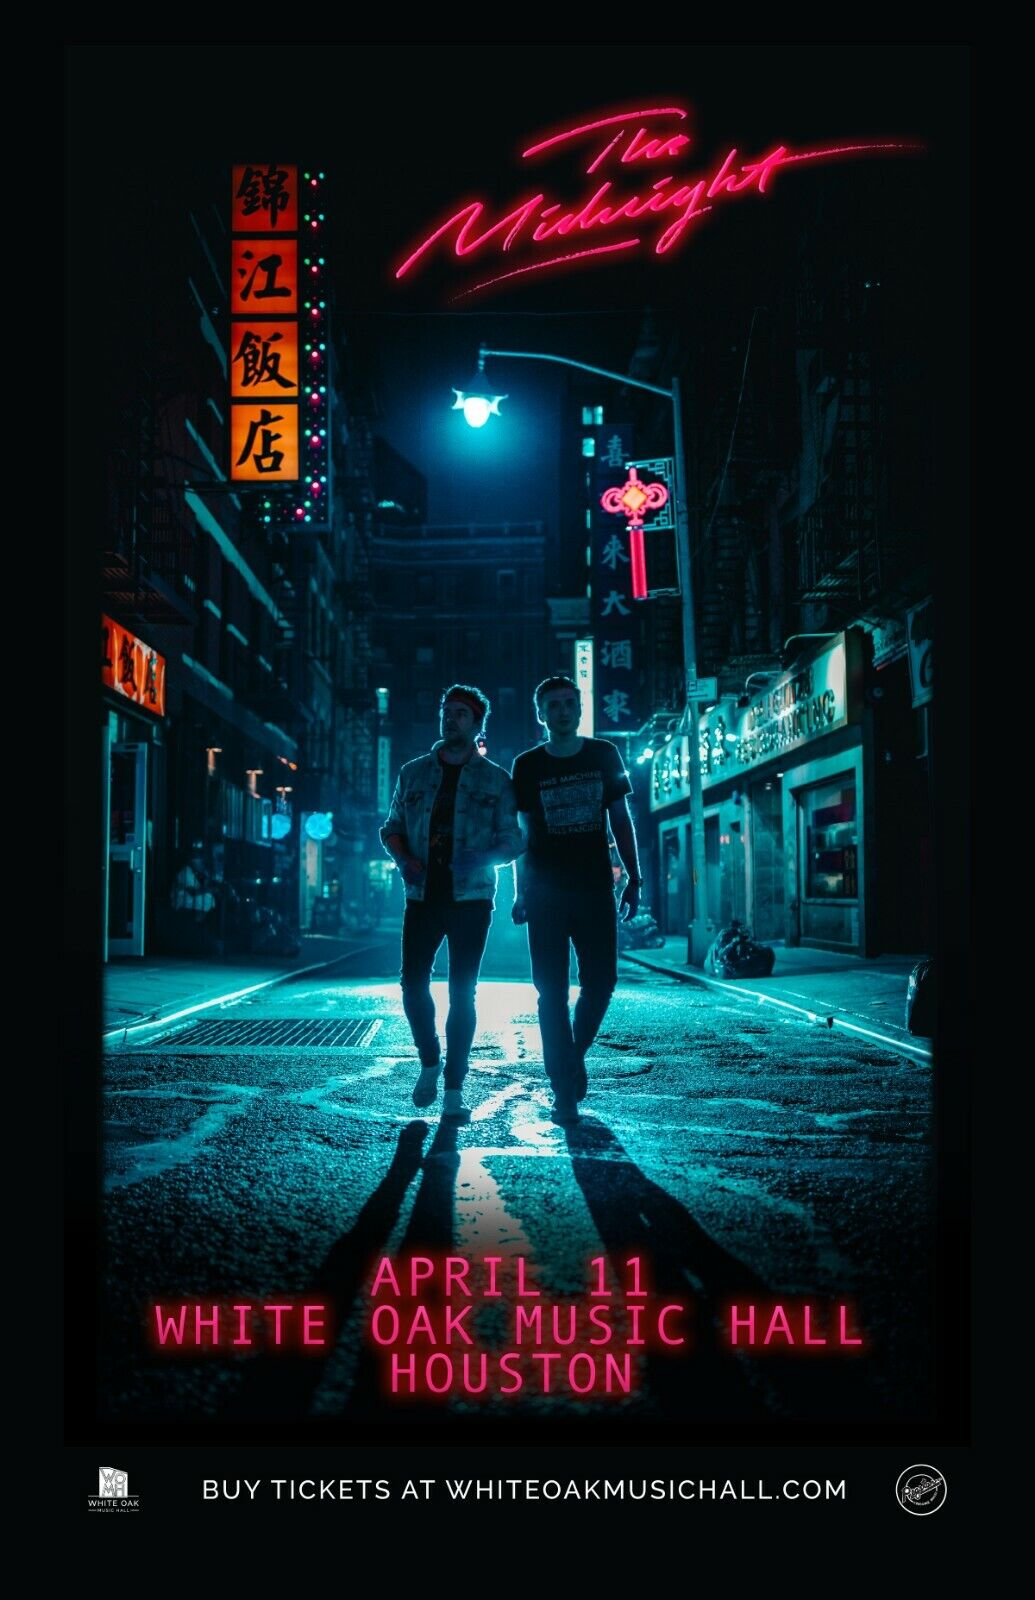 THE MIDNIGHT 2019 HOUSTON CONCERT TOUR POSTER - Synthwave, Electronic Music - $10.99